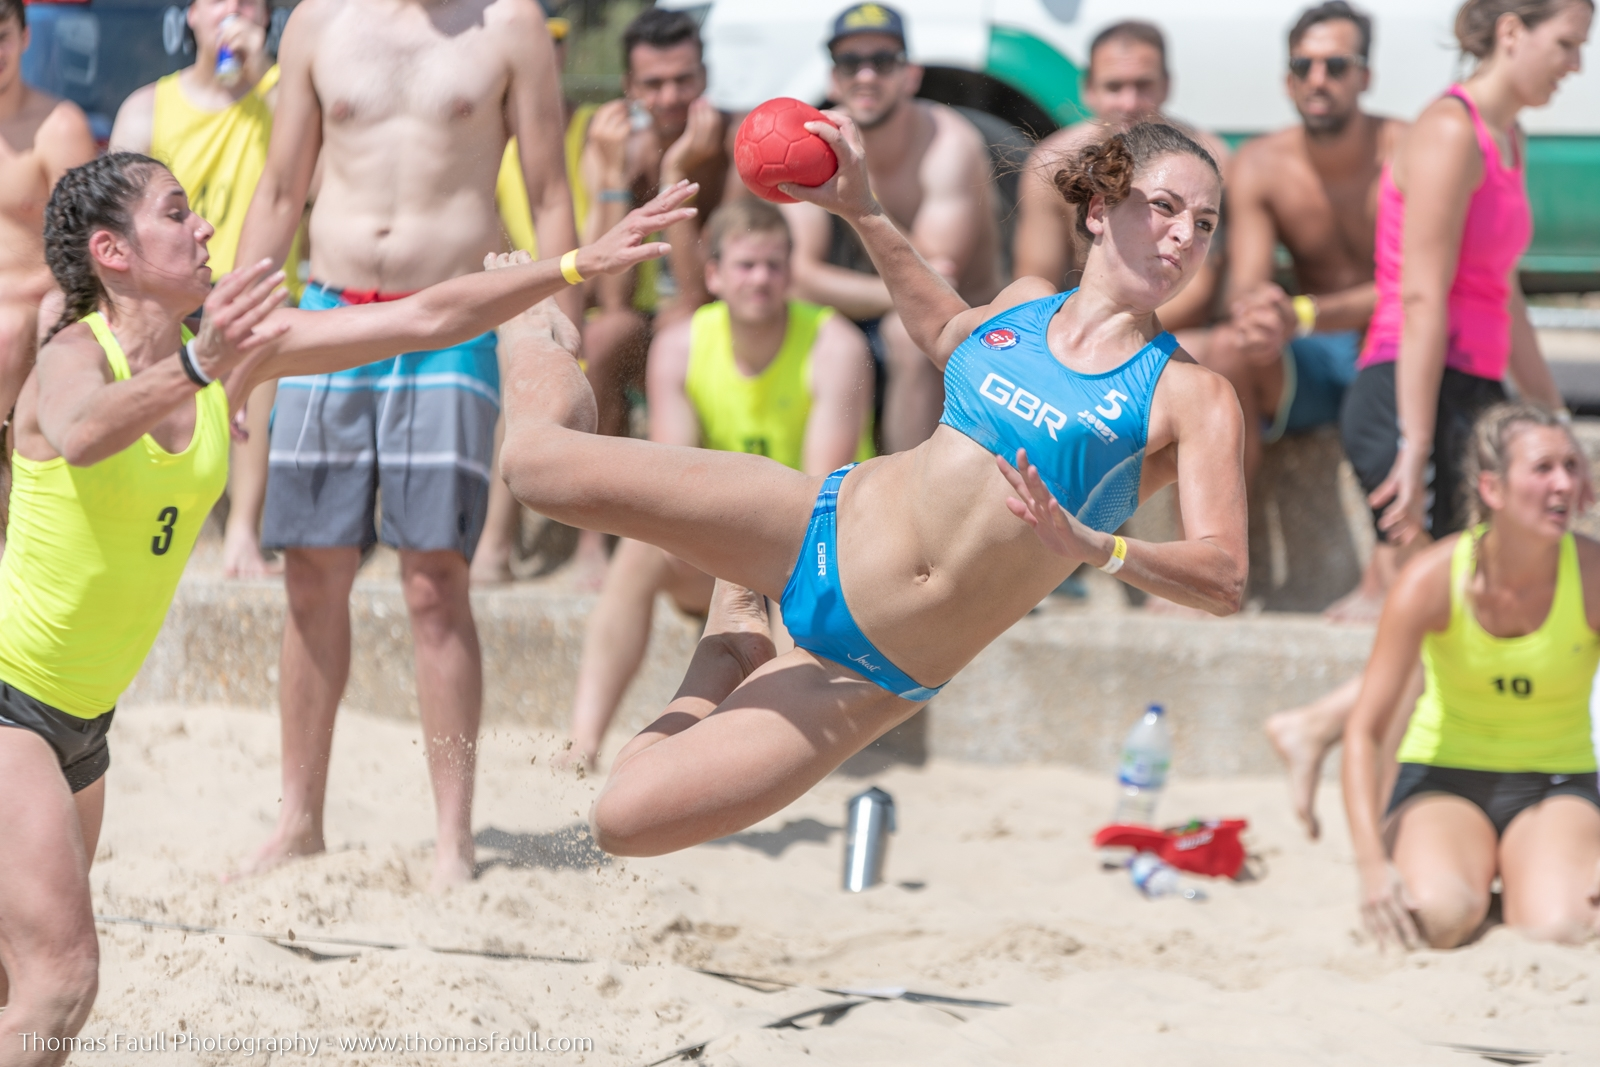 101 photos from the British Beach Handball Championships